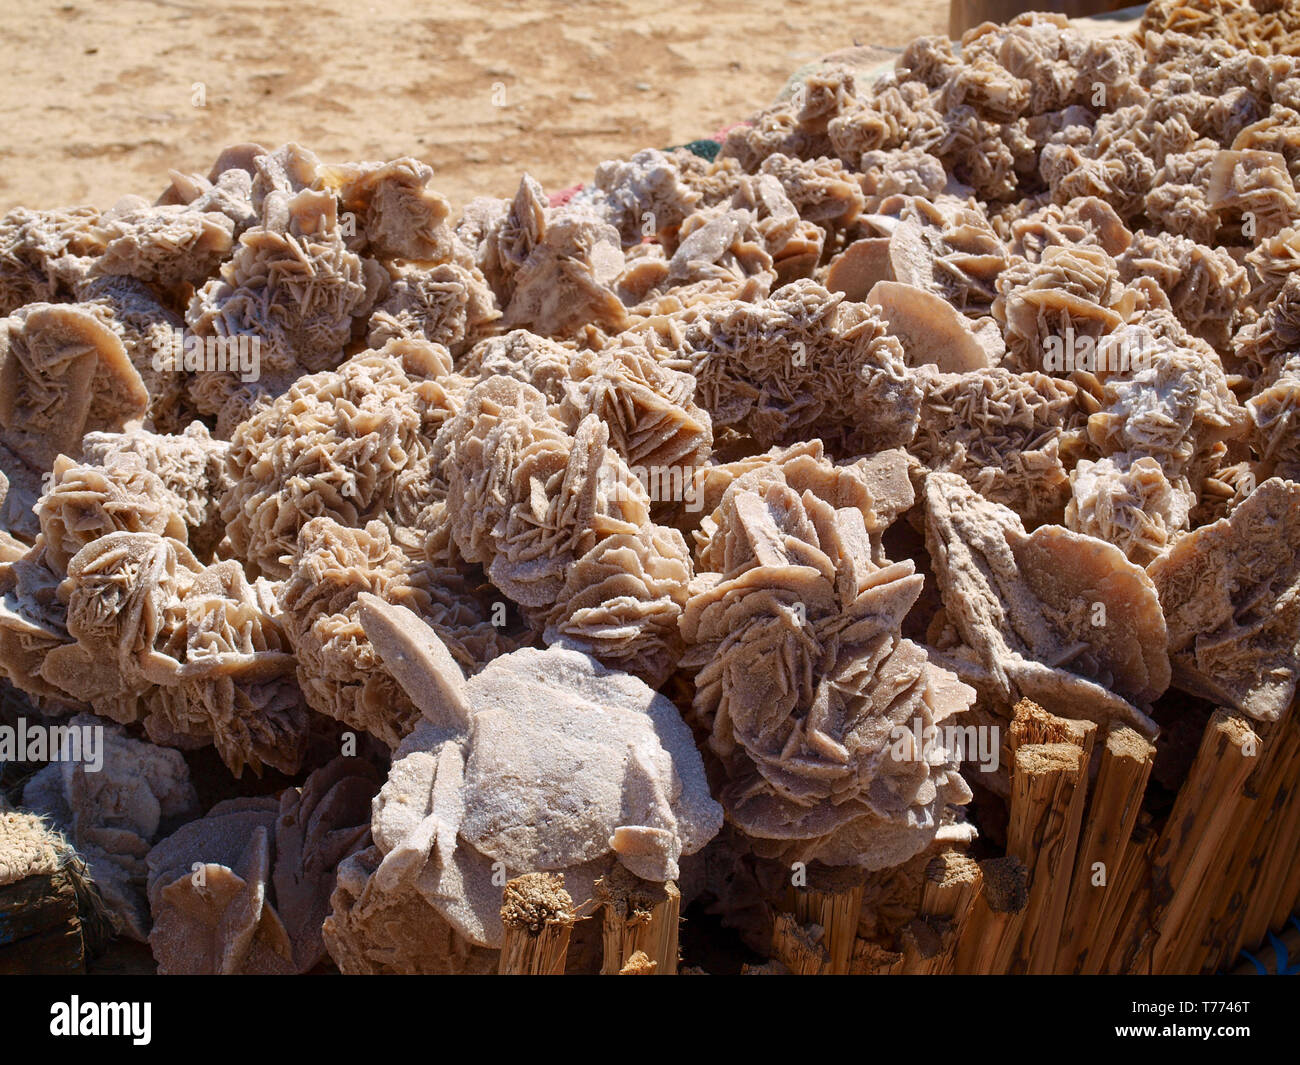 Desert roses, crystals made of the sand of Sahara and salt, Tunisian souvenirs - Stock Image